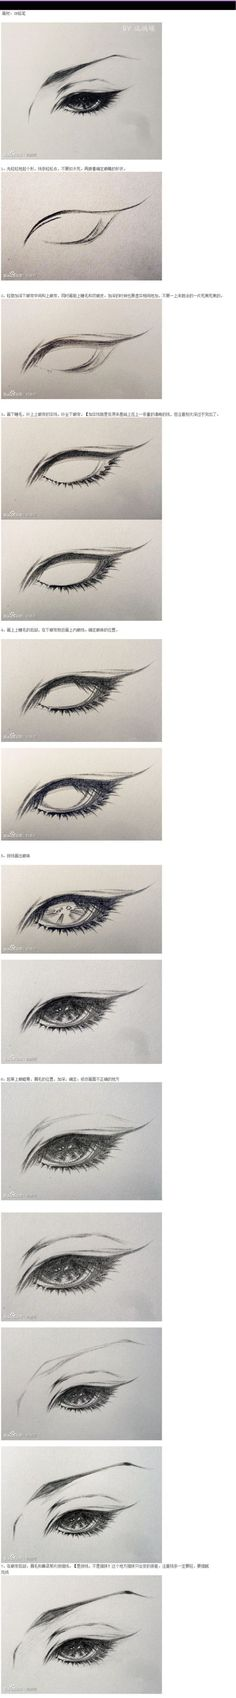 How To Draw Anime Concept Reference https://pinterest.com/iphonewallpers/ Photos Imagenes Digital Drawing Technique Gallery Wallpaper https://twitter.com/AnimeWallpers https://pinterest.com/dark20/ Anime Ecchi Art Iphone Lockscreen Comics Sexy Cartoon Pic Como Dibujar Manga Style ArtStation Body Illustration Pixiv By Fan Artworks Boys Suit Nice Girls Аниме Characters IMG Tutorial Guide Inspiration Animation Anatomy 体 Rpg http://dark-lk.wixsite.com/iphonewallpers IMG #DrawingAnimeCharacters